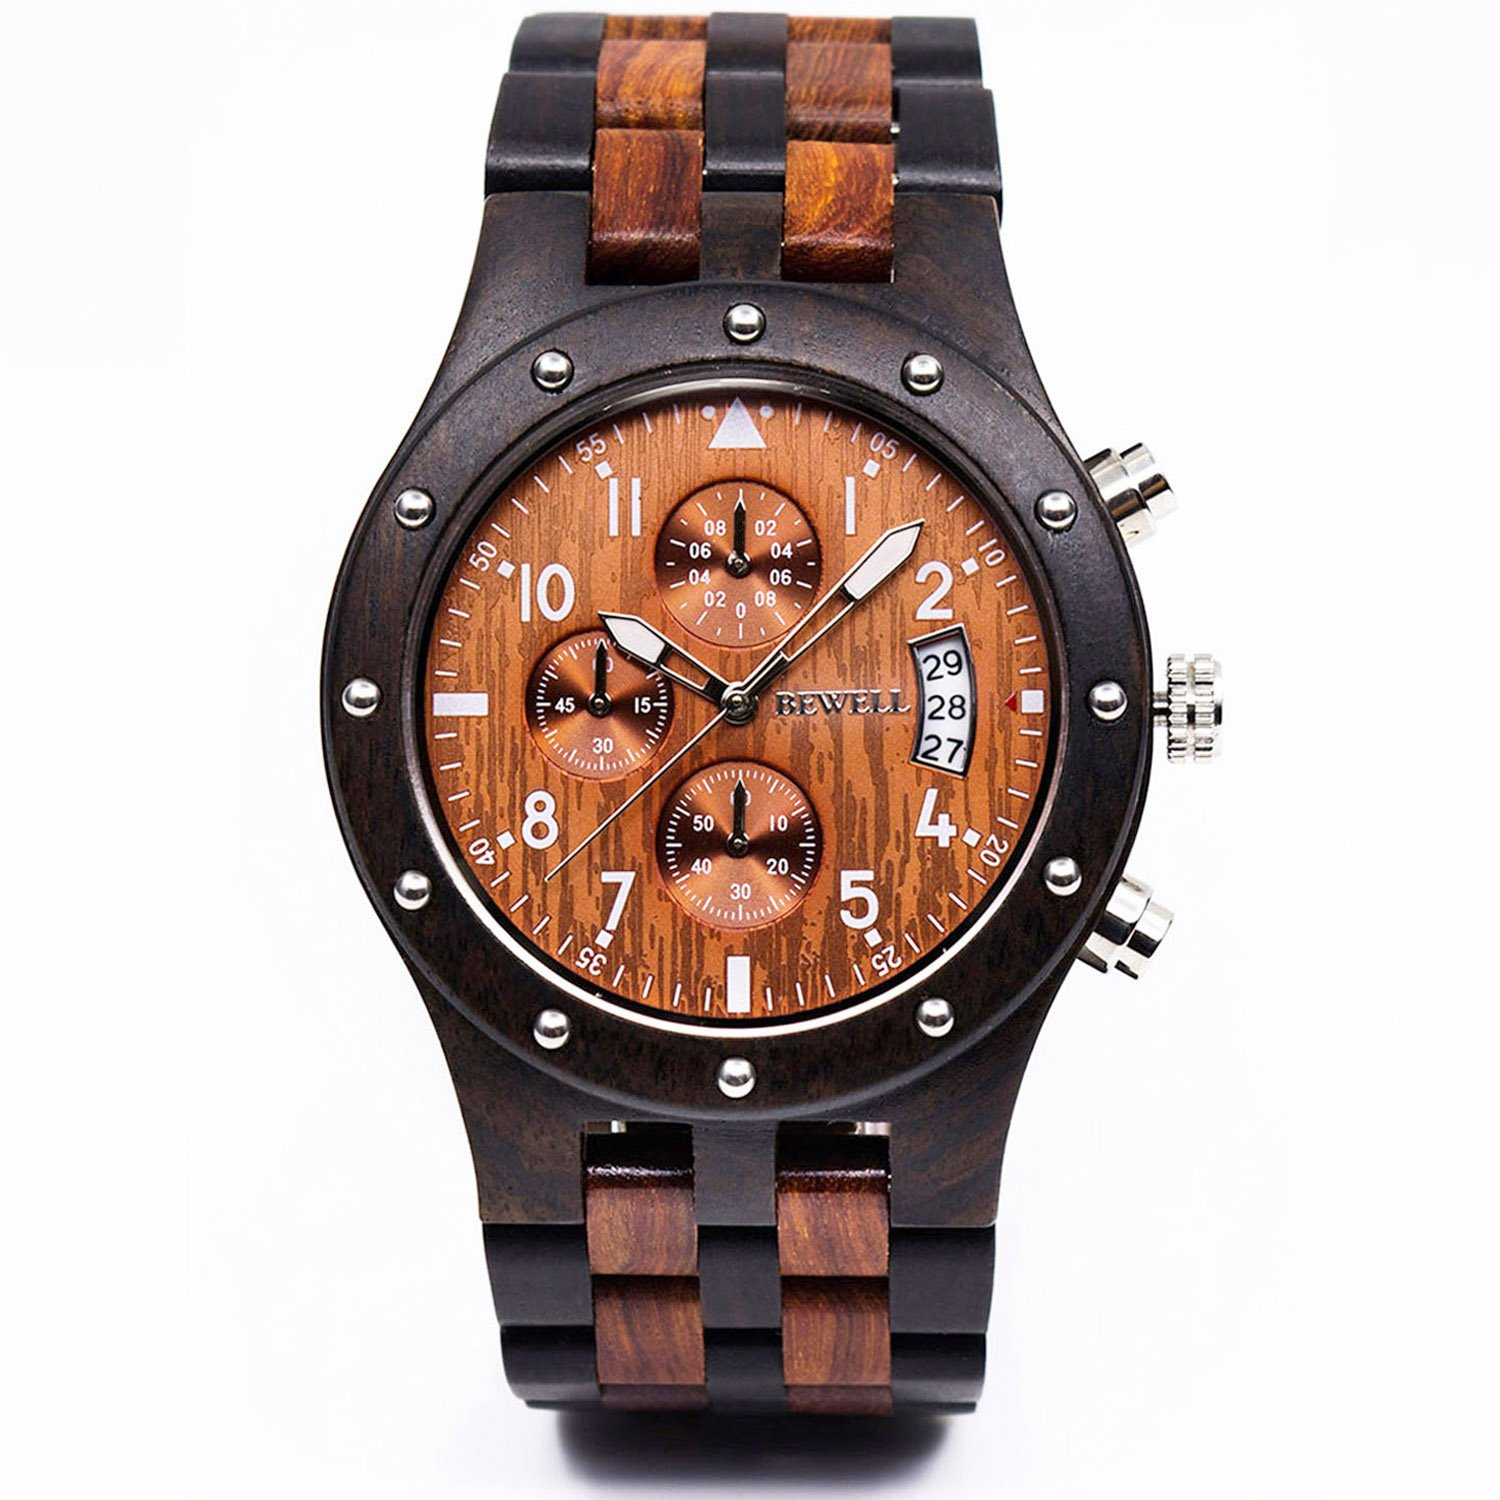 the band watches with wooden custom l luxwoods gaston woods lux wood zebra watch personalized engraving by